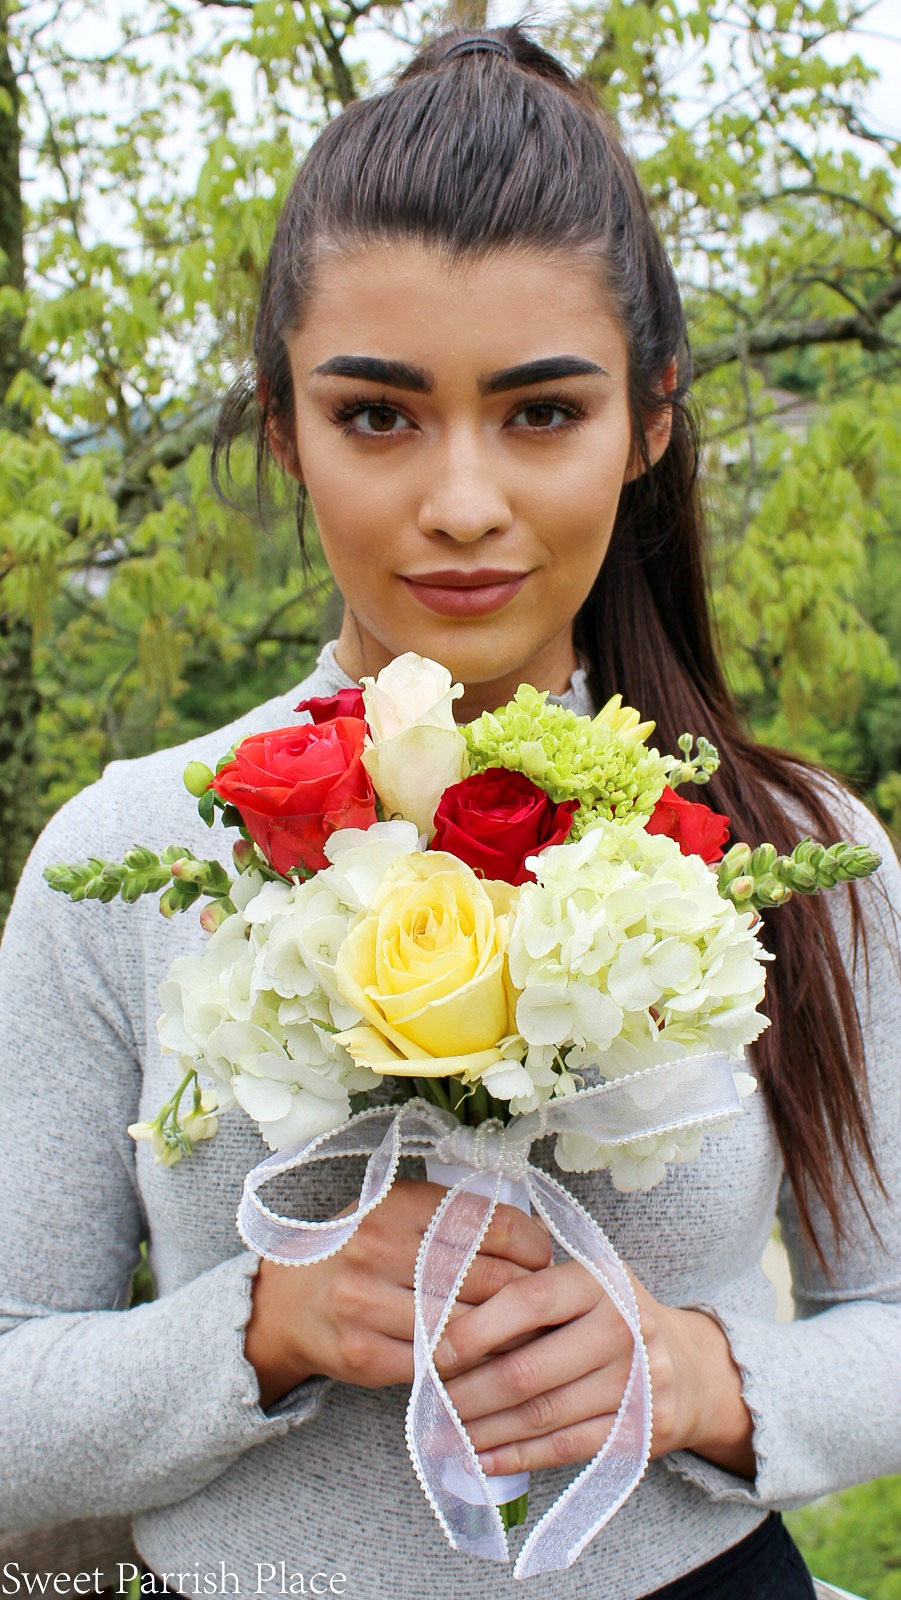 Diy prom bouquet sweet parrish place we didnt let the bouquet get too large because its not her wedding day its prom and it looked so great with her red dress i knew what the dress looked izmirmasajfo